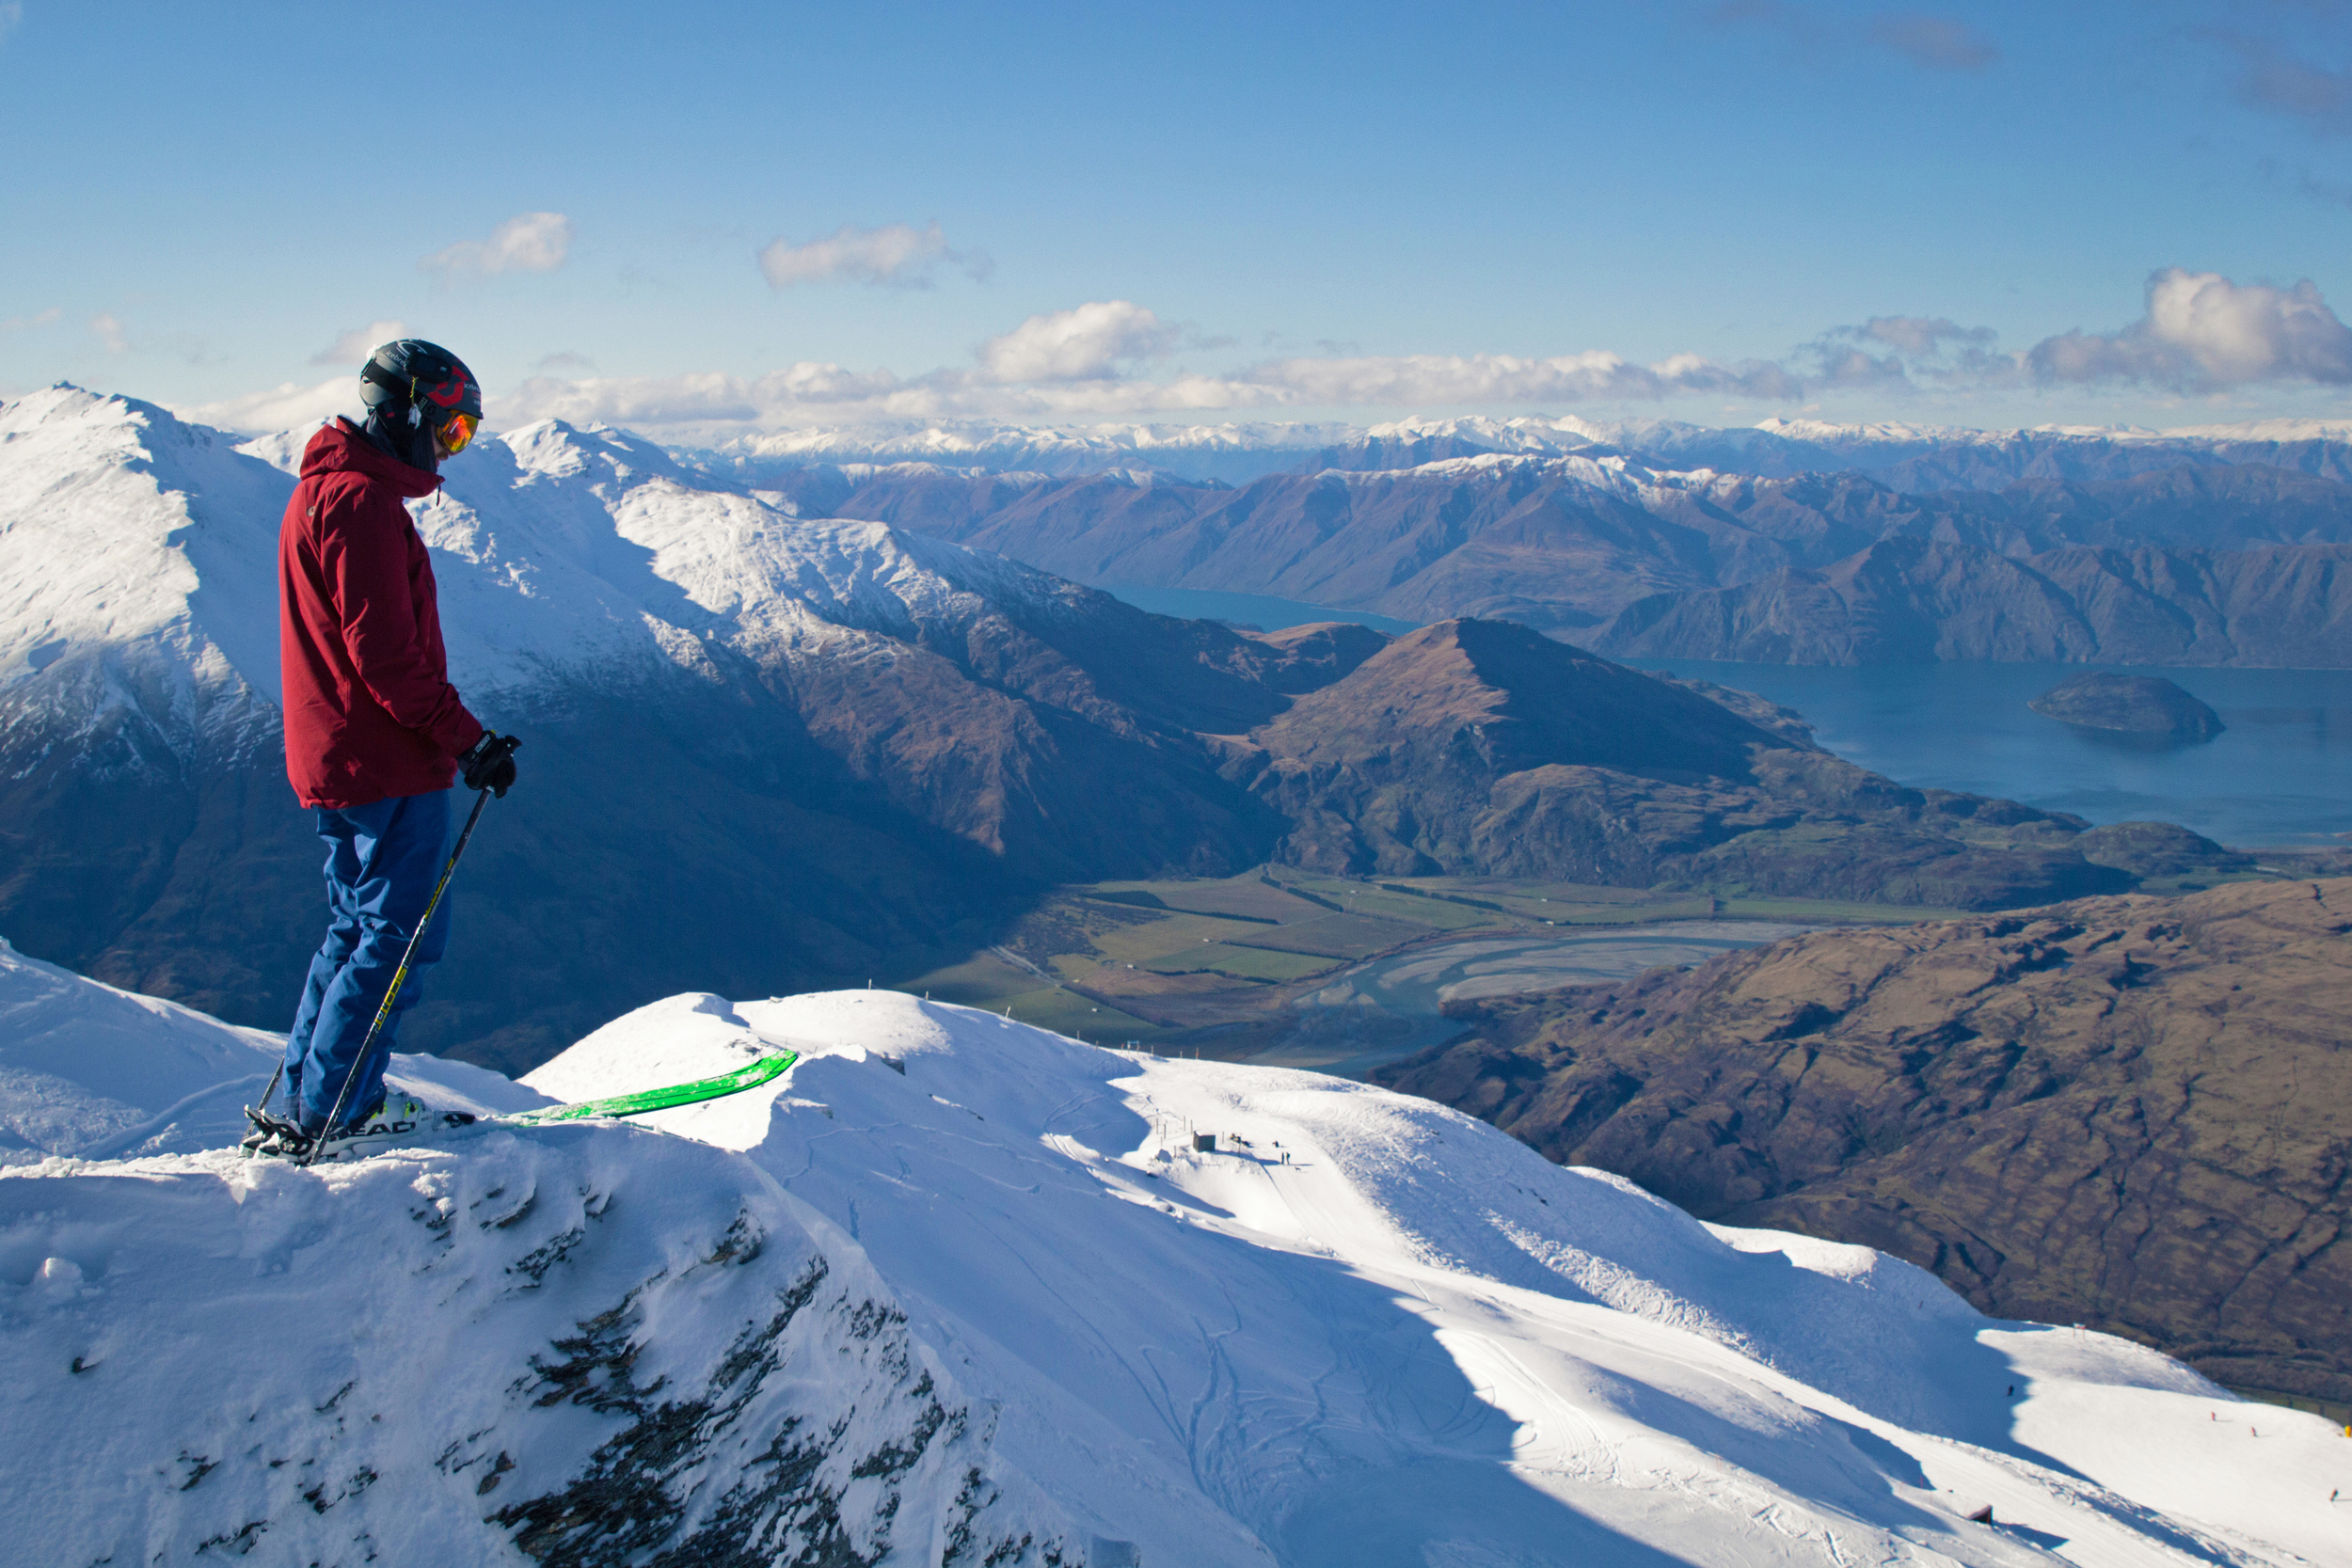 Treble Cone Looking out on lake Wanaka. Photo by Hugo Peckham https://www.facebook.com/hugopeckhamphotography/?fref=ts